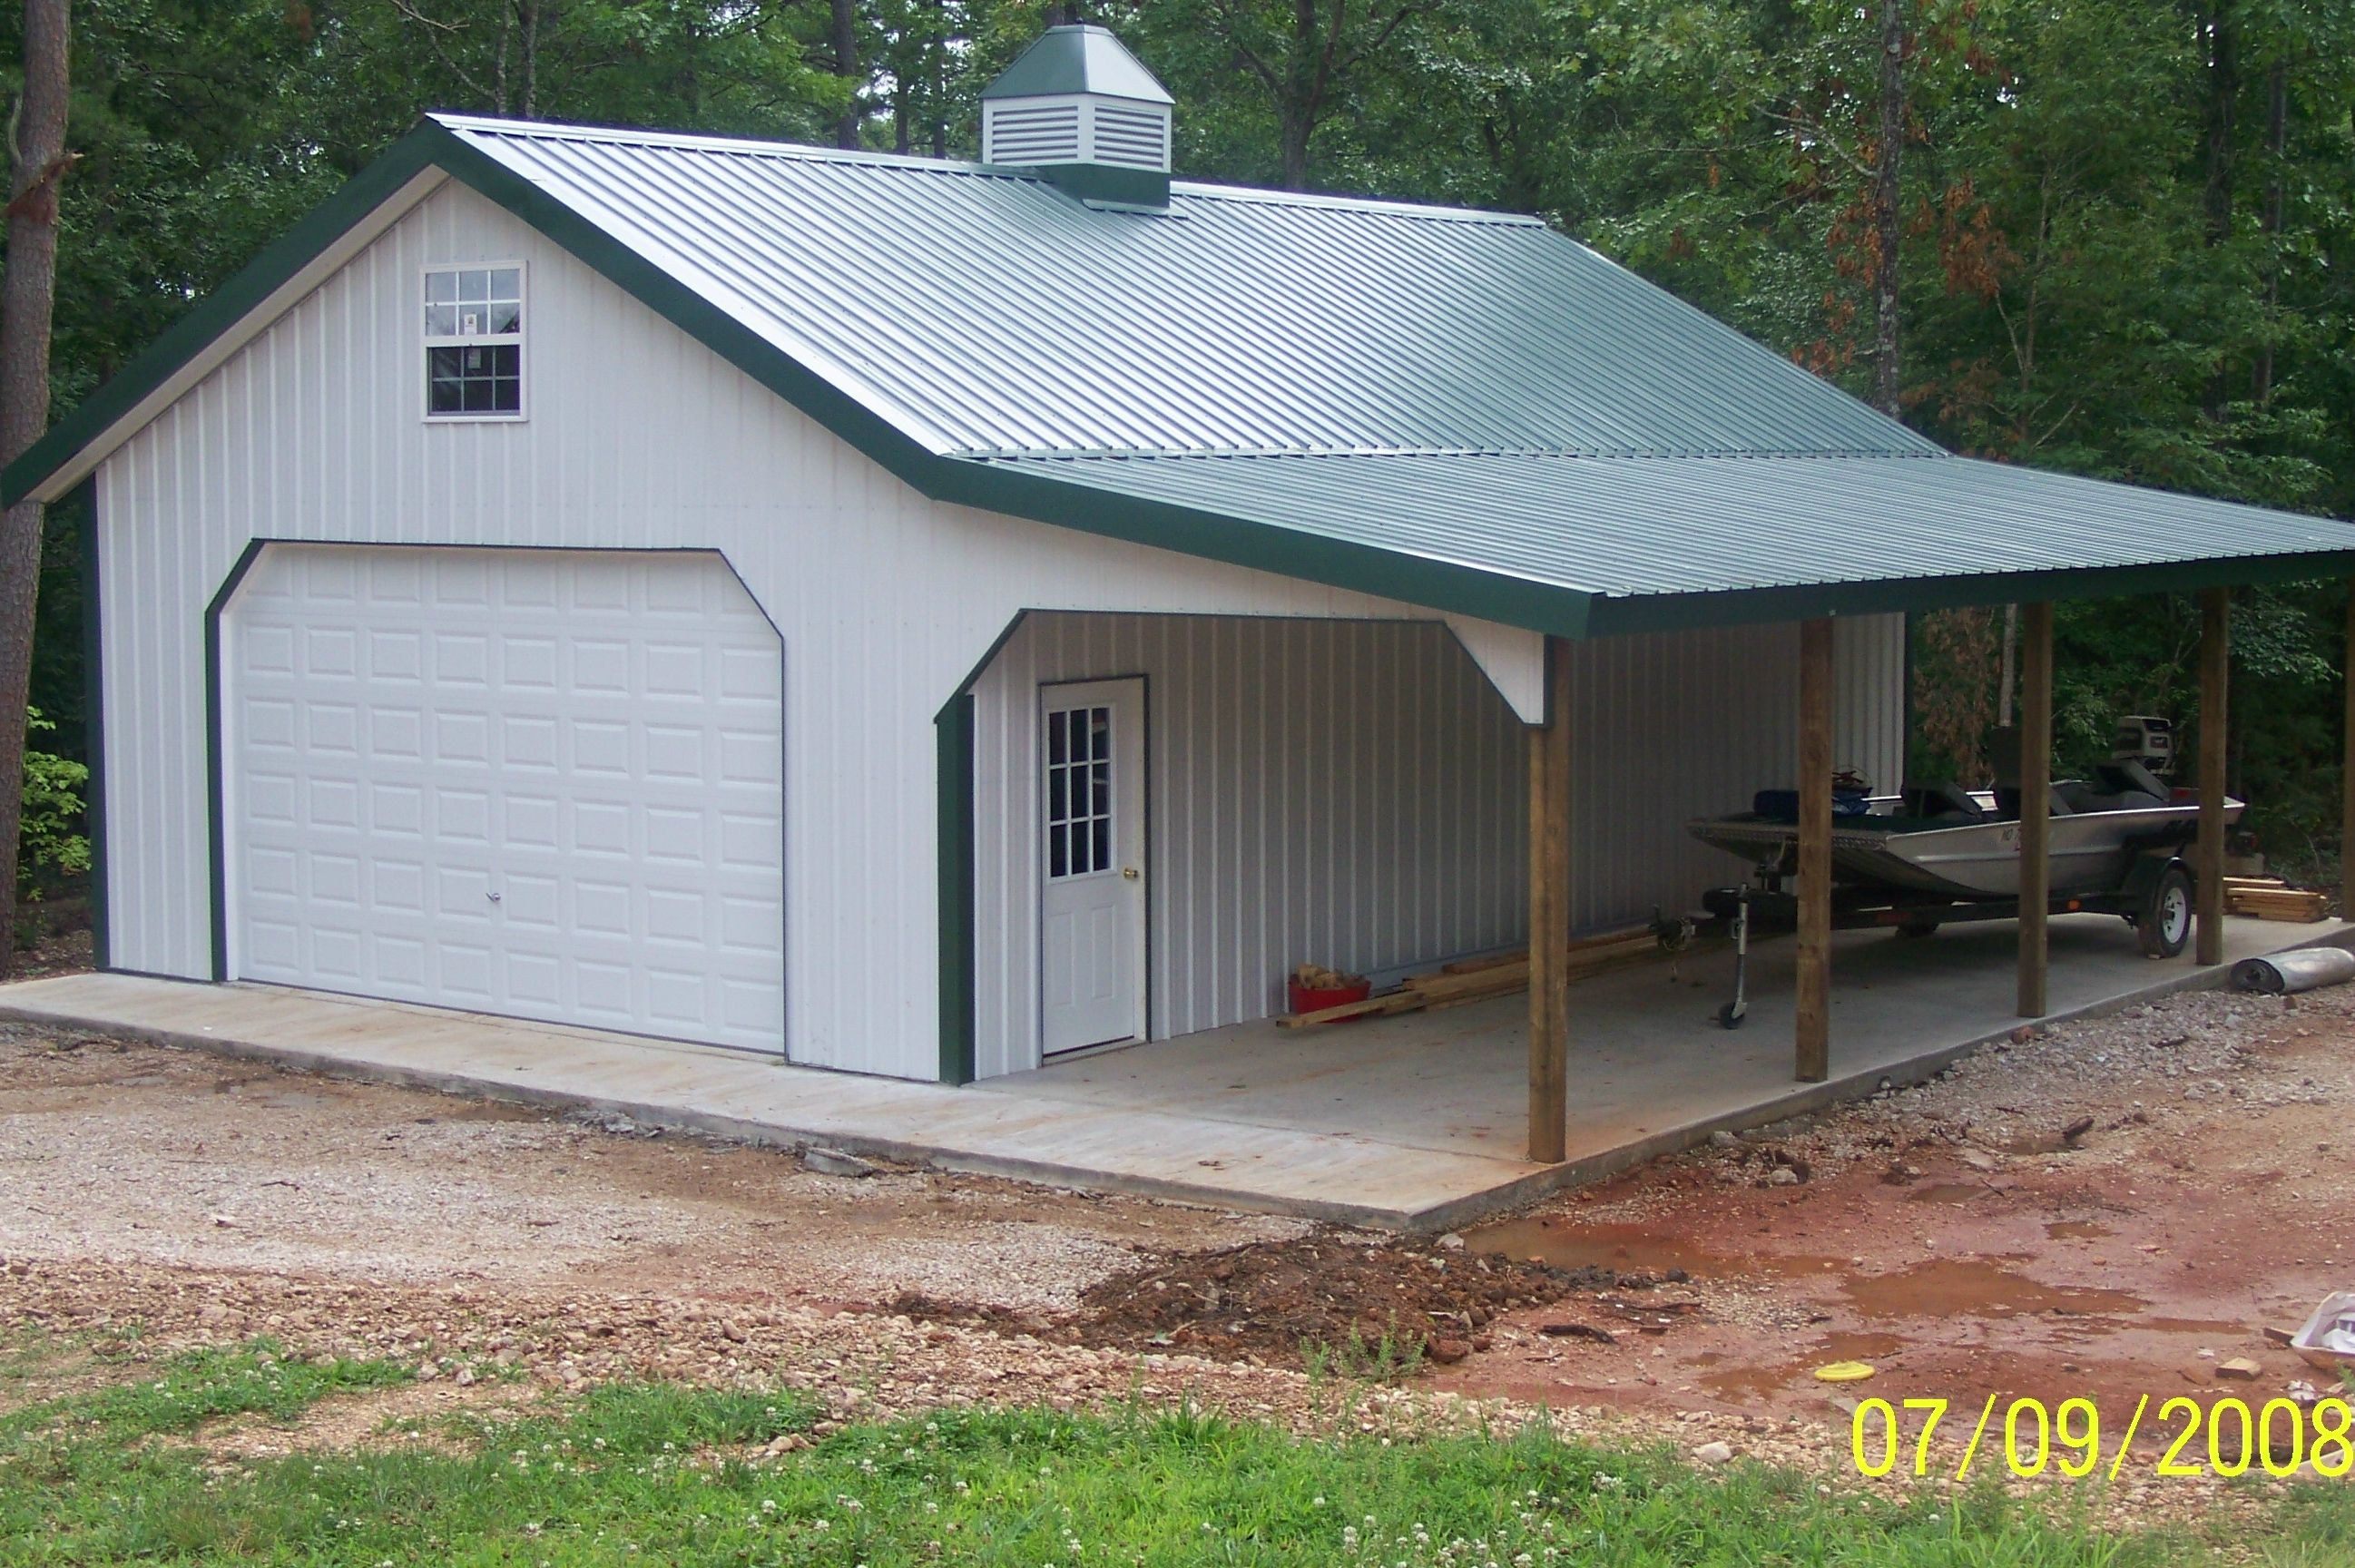 Garage plans 58 garage plans and free diy building for How to build a pole barn plans for free